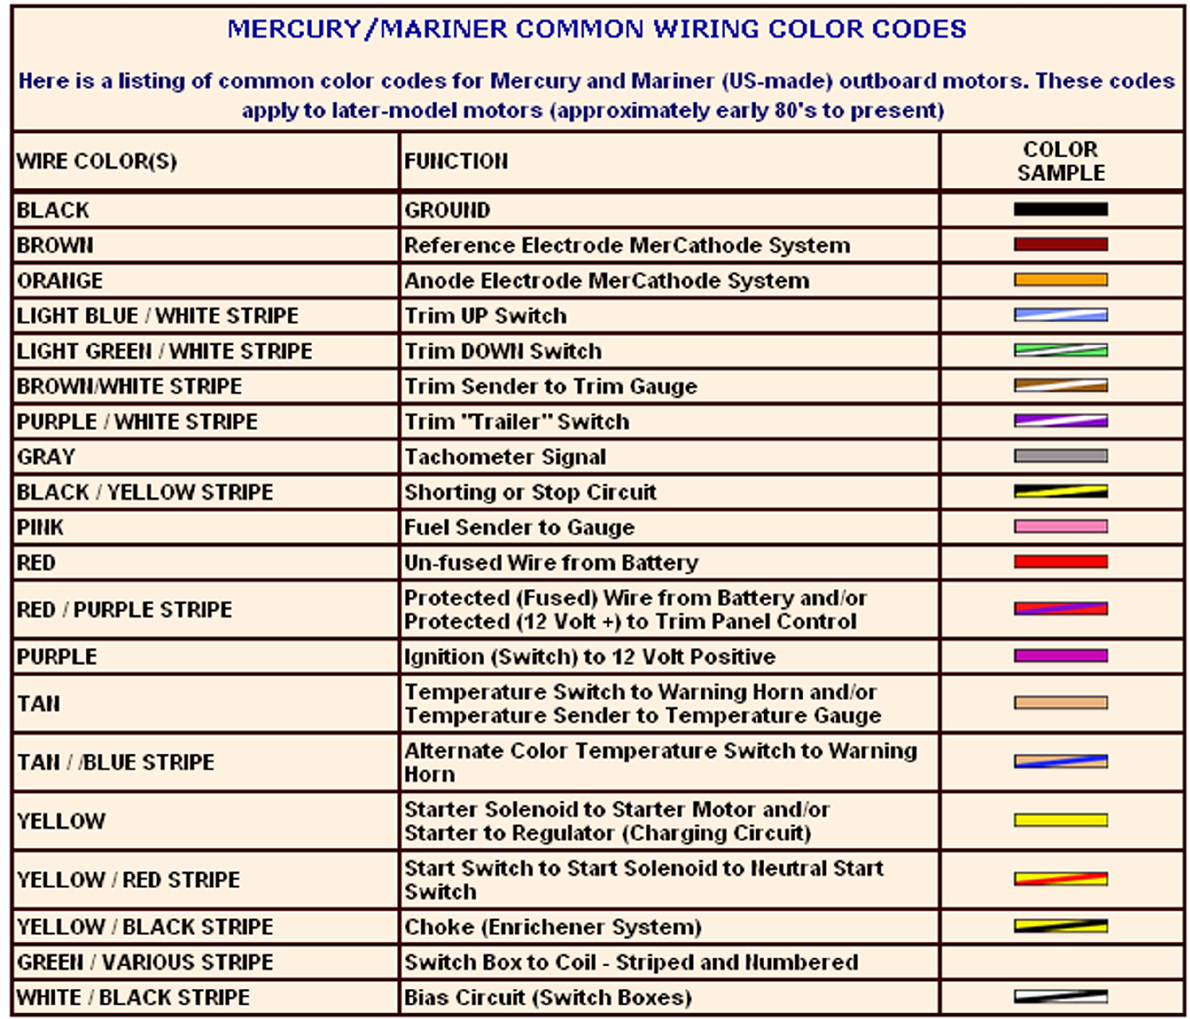 Wiring Diagram For Mercury Outboard | Wiring Diagram - Mercury Outboard Wiring Diagram